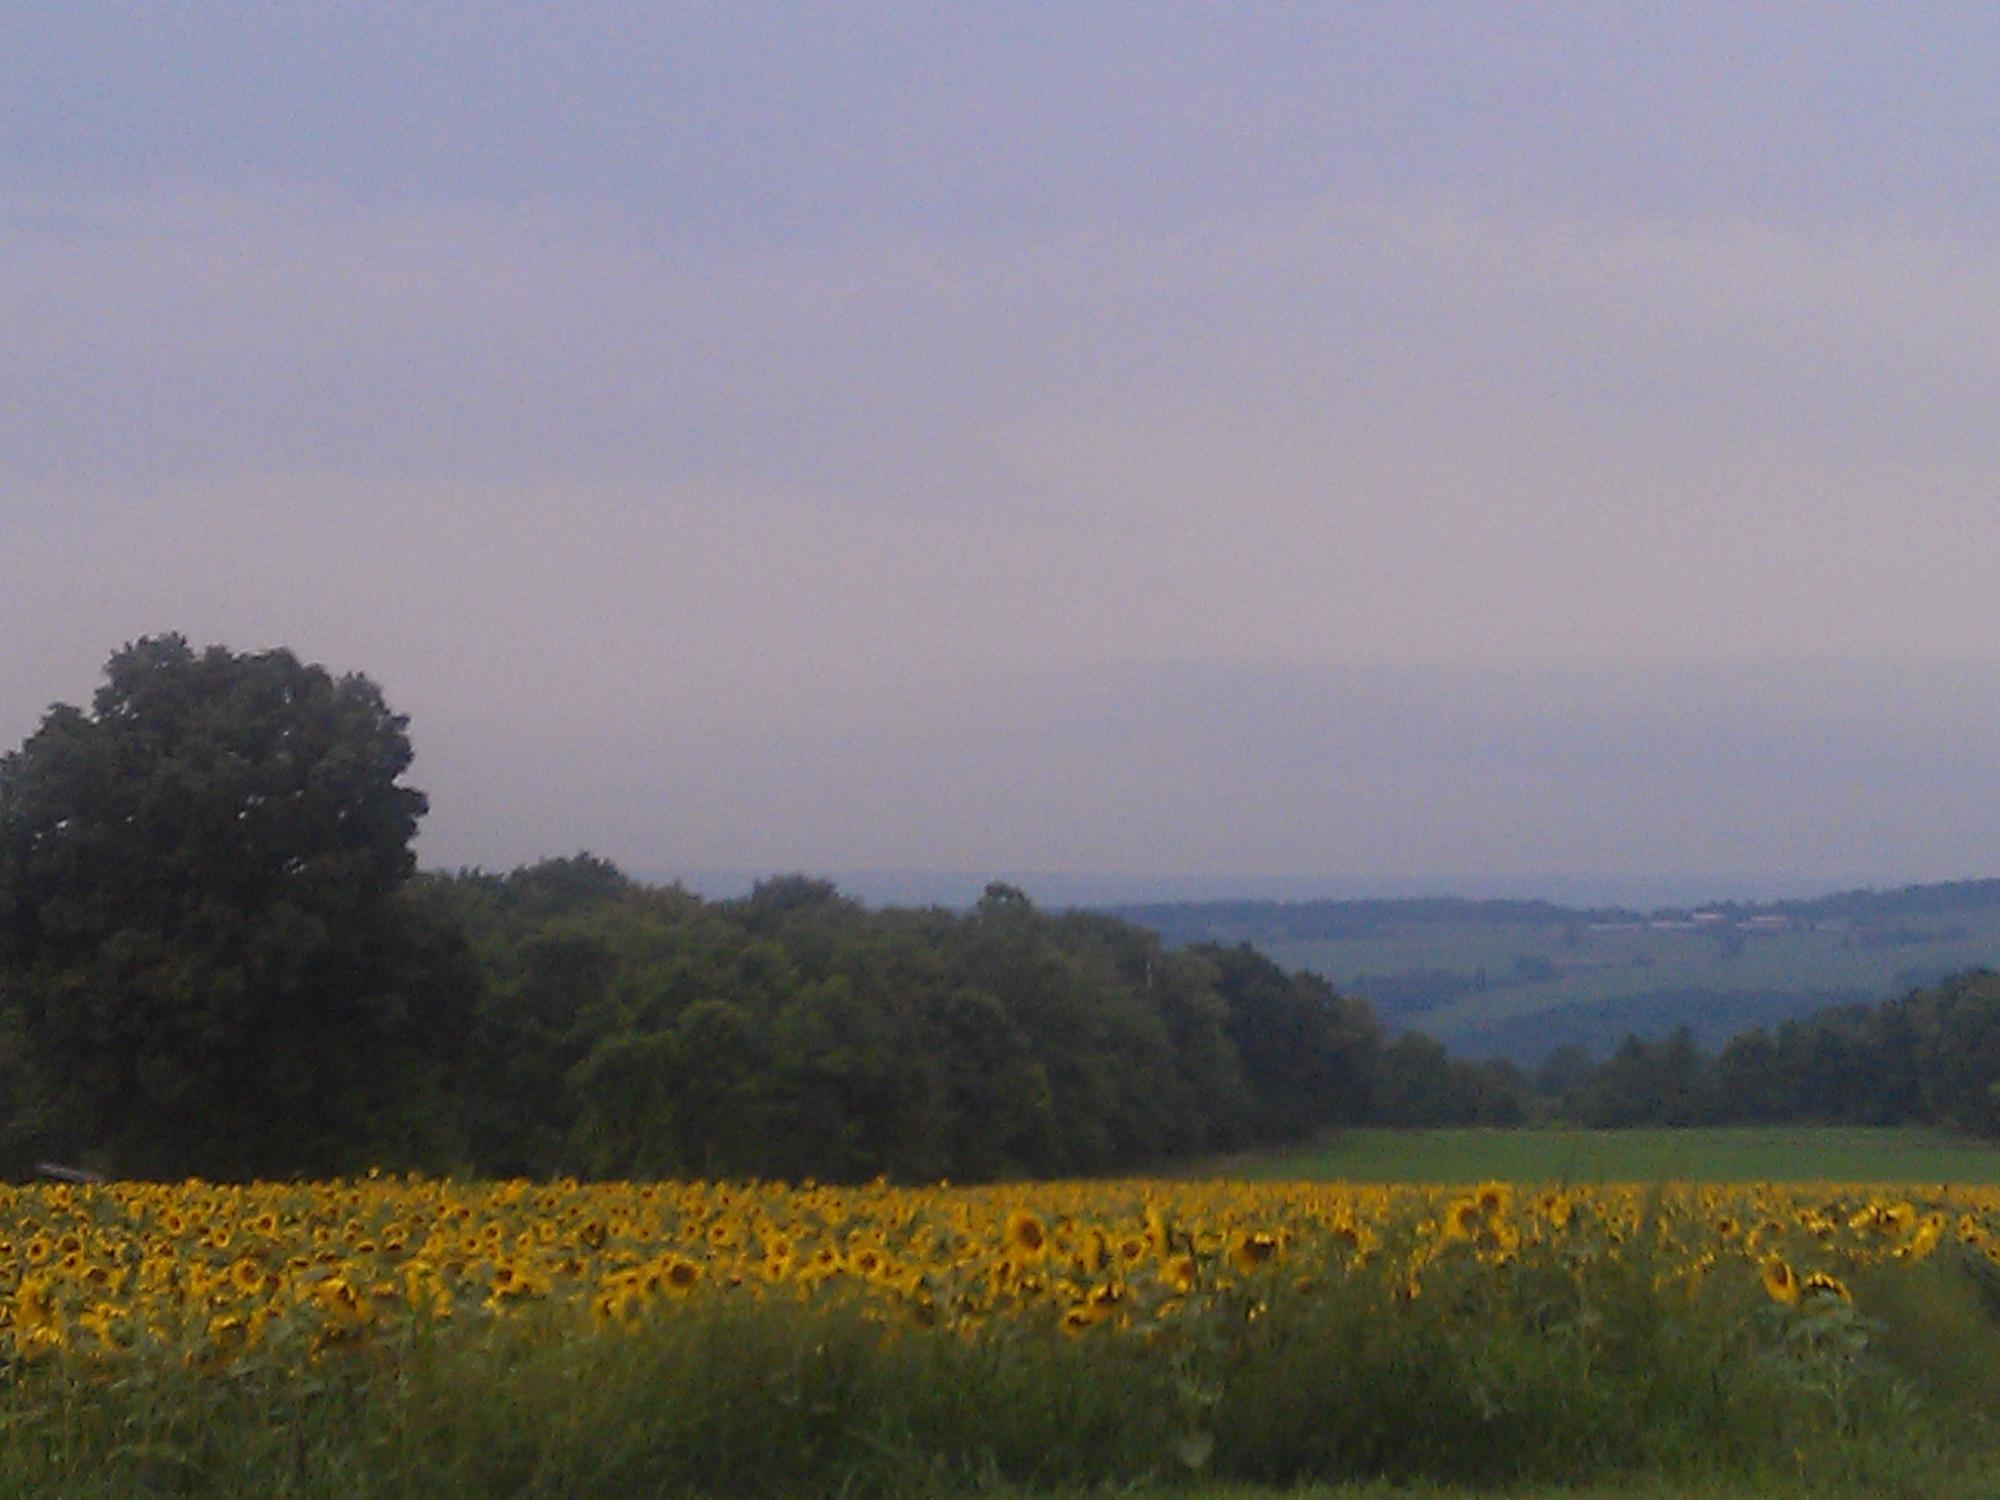 Sunflower field near east shore of Cayuga Lake, NY